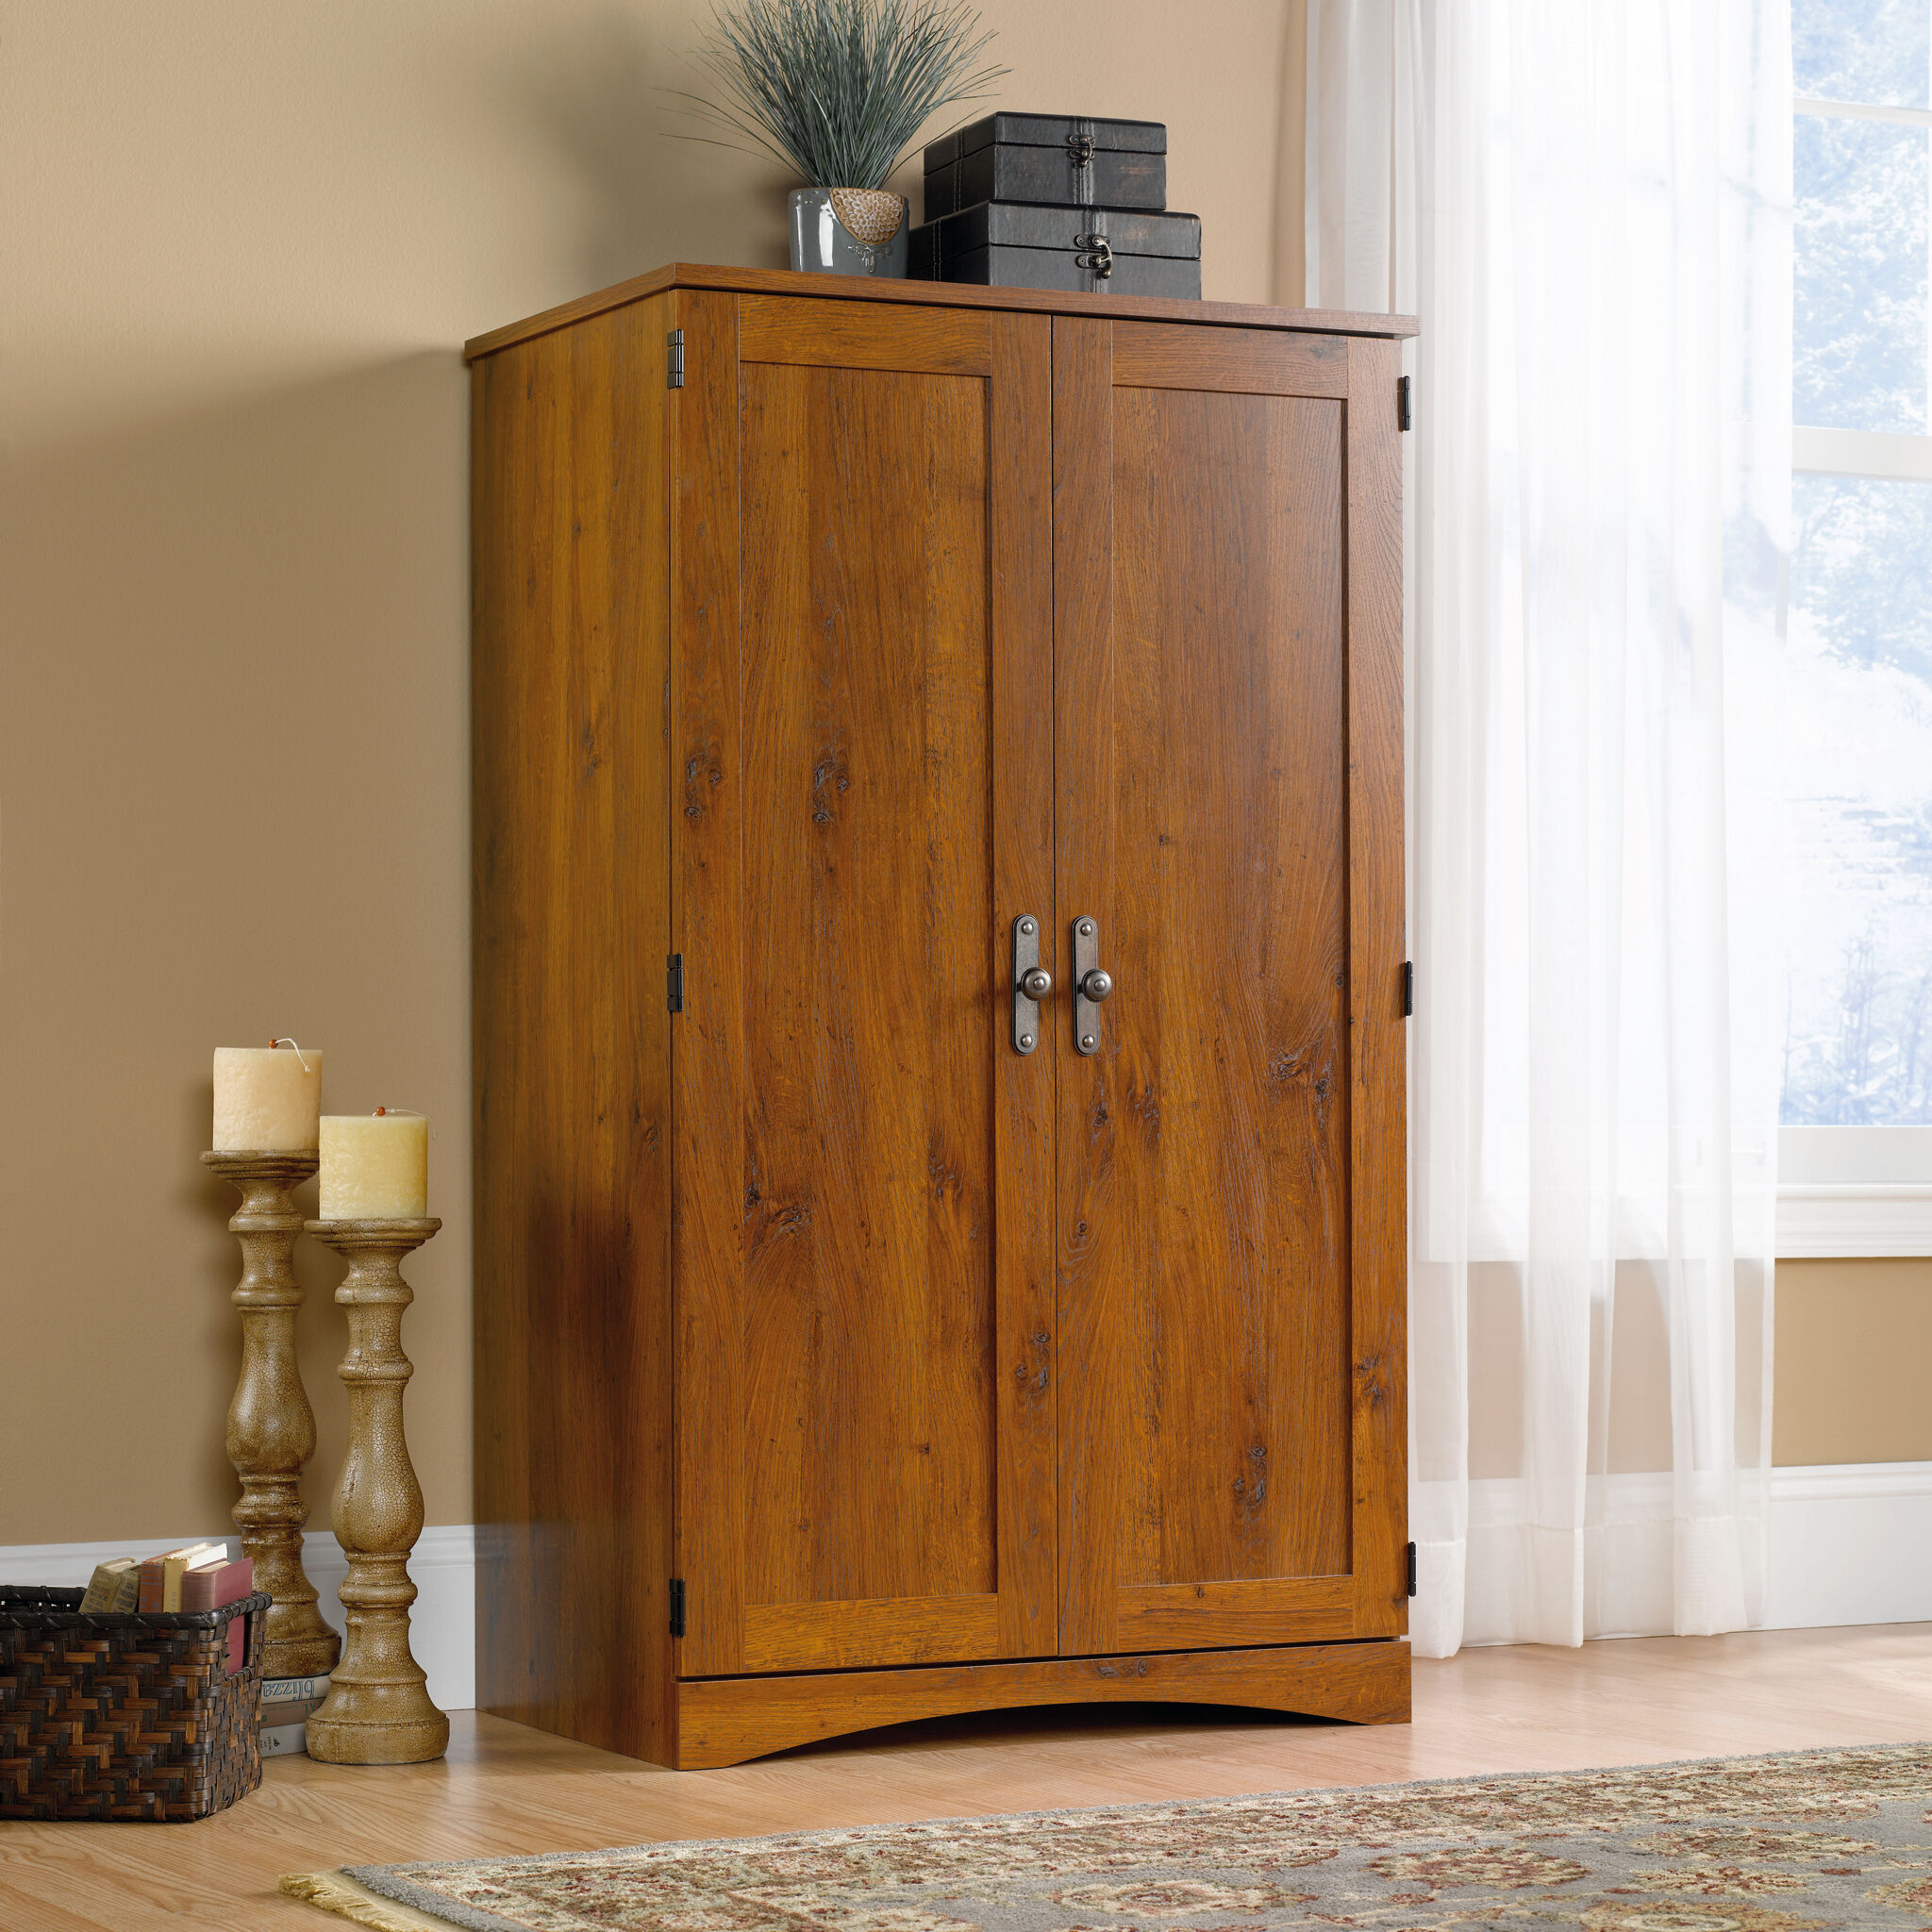 Armoires   Wardrobes   Mathis Brothers Furniture Stores 54 quot  Transitional Computer Armoire nbsp